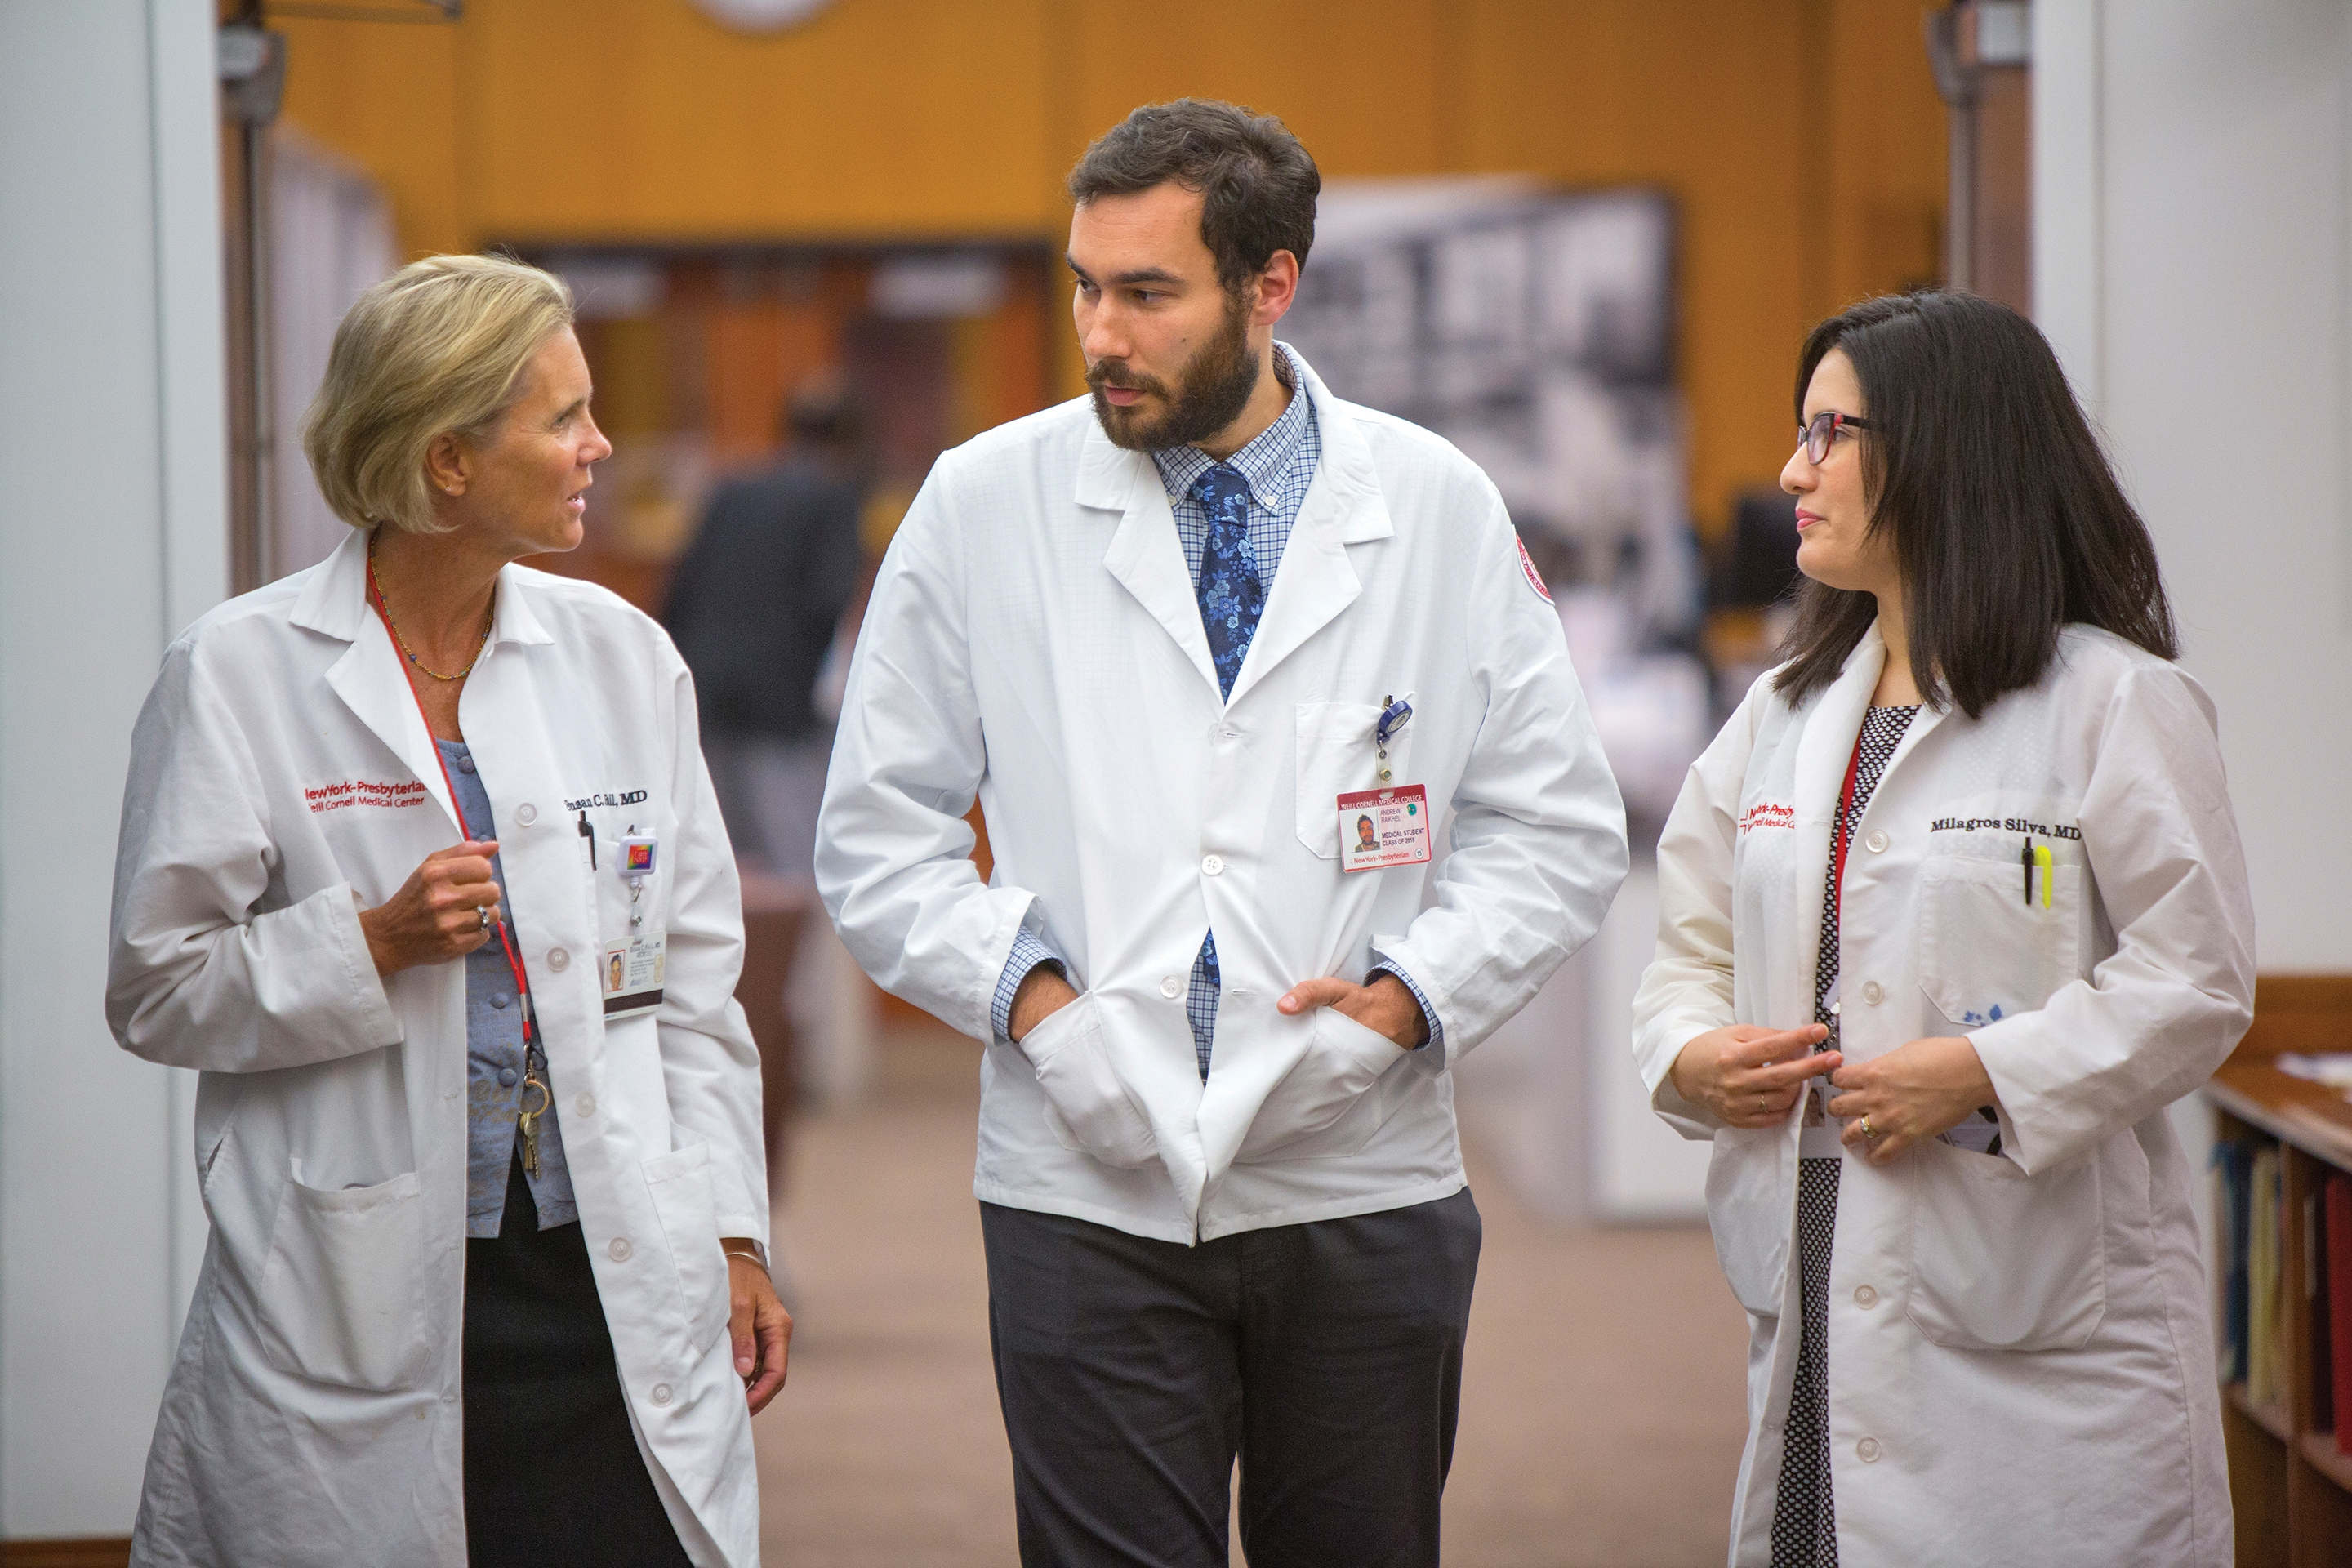 Vince Raikhel '18 (center) with mentors Dr. Susan Ball (left), and Dr. Milagros Silva